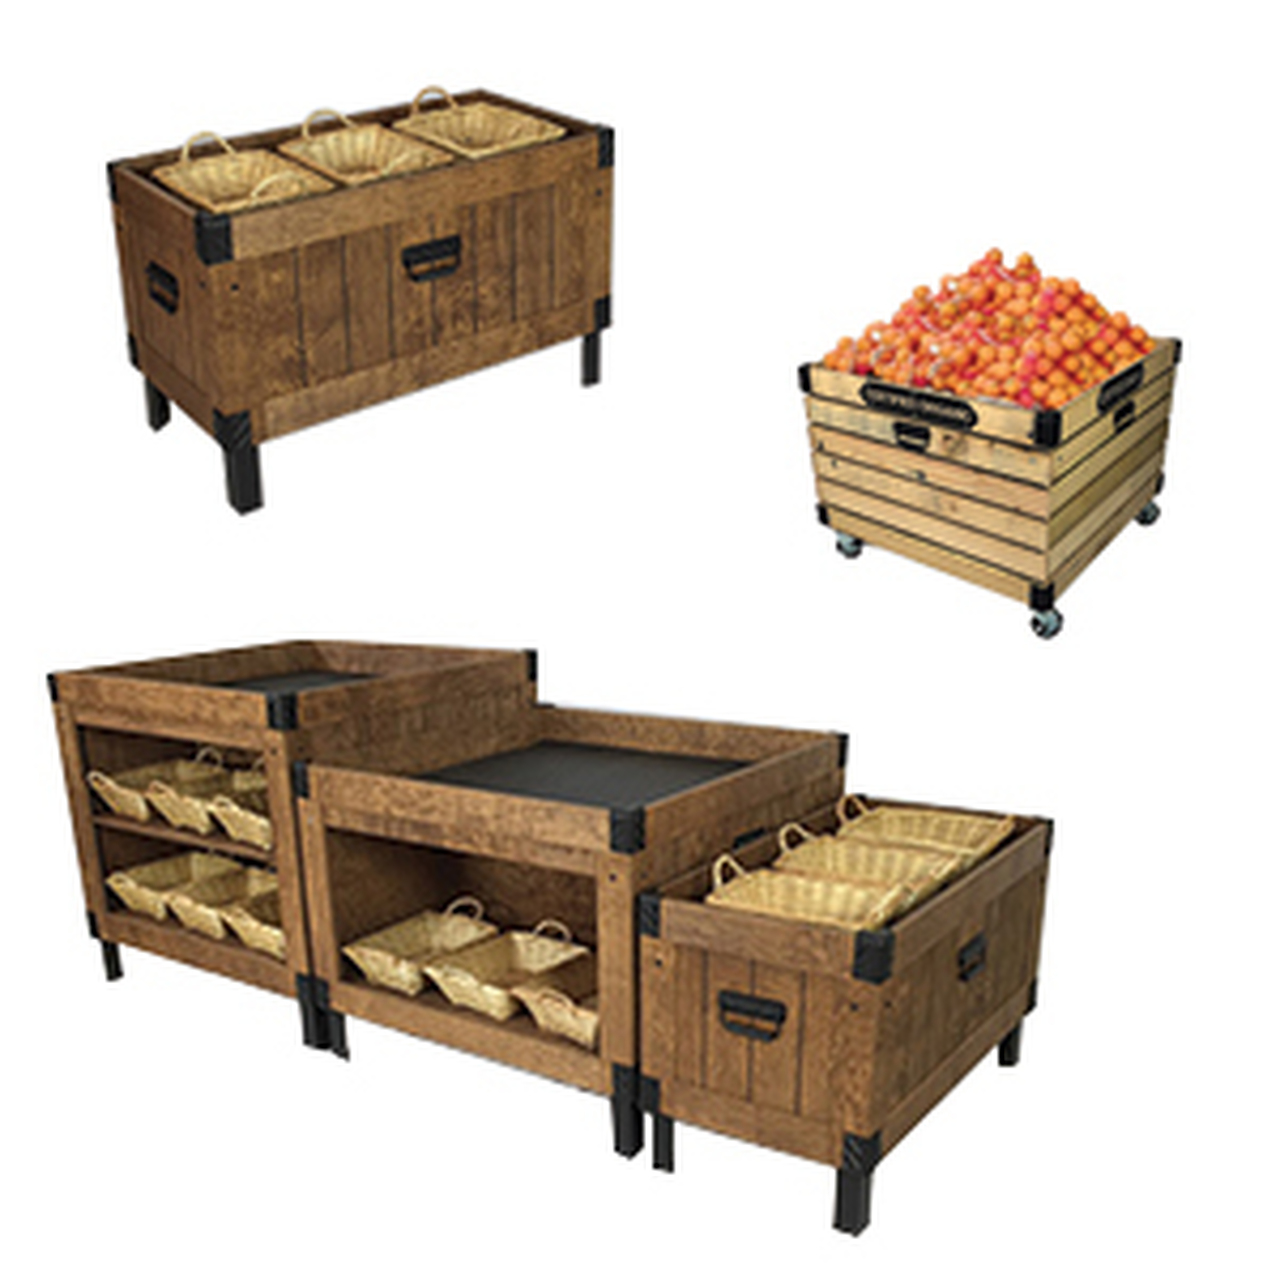 produce-display-bins-&-cases